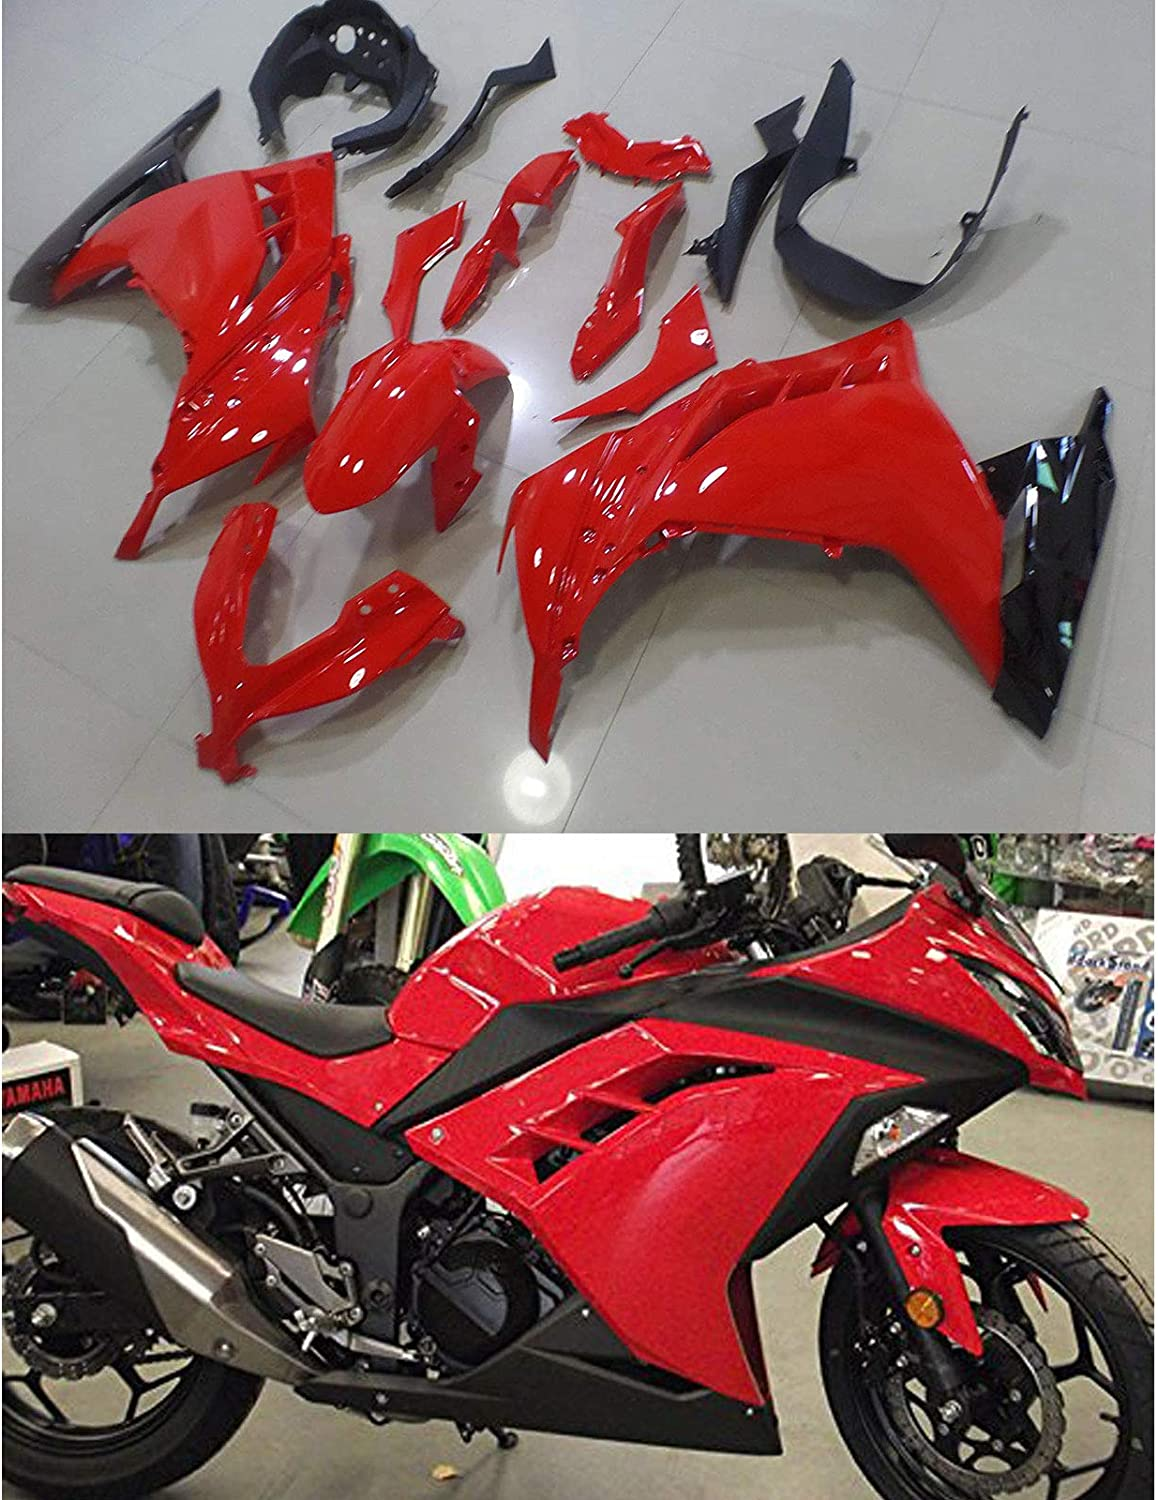 Moto Onfire ABS Plastic Fairings Kits Fit for Kawasaki Ninja 300 EX300R ZX300R 2013 2014 2015 2016 Red Black